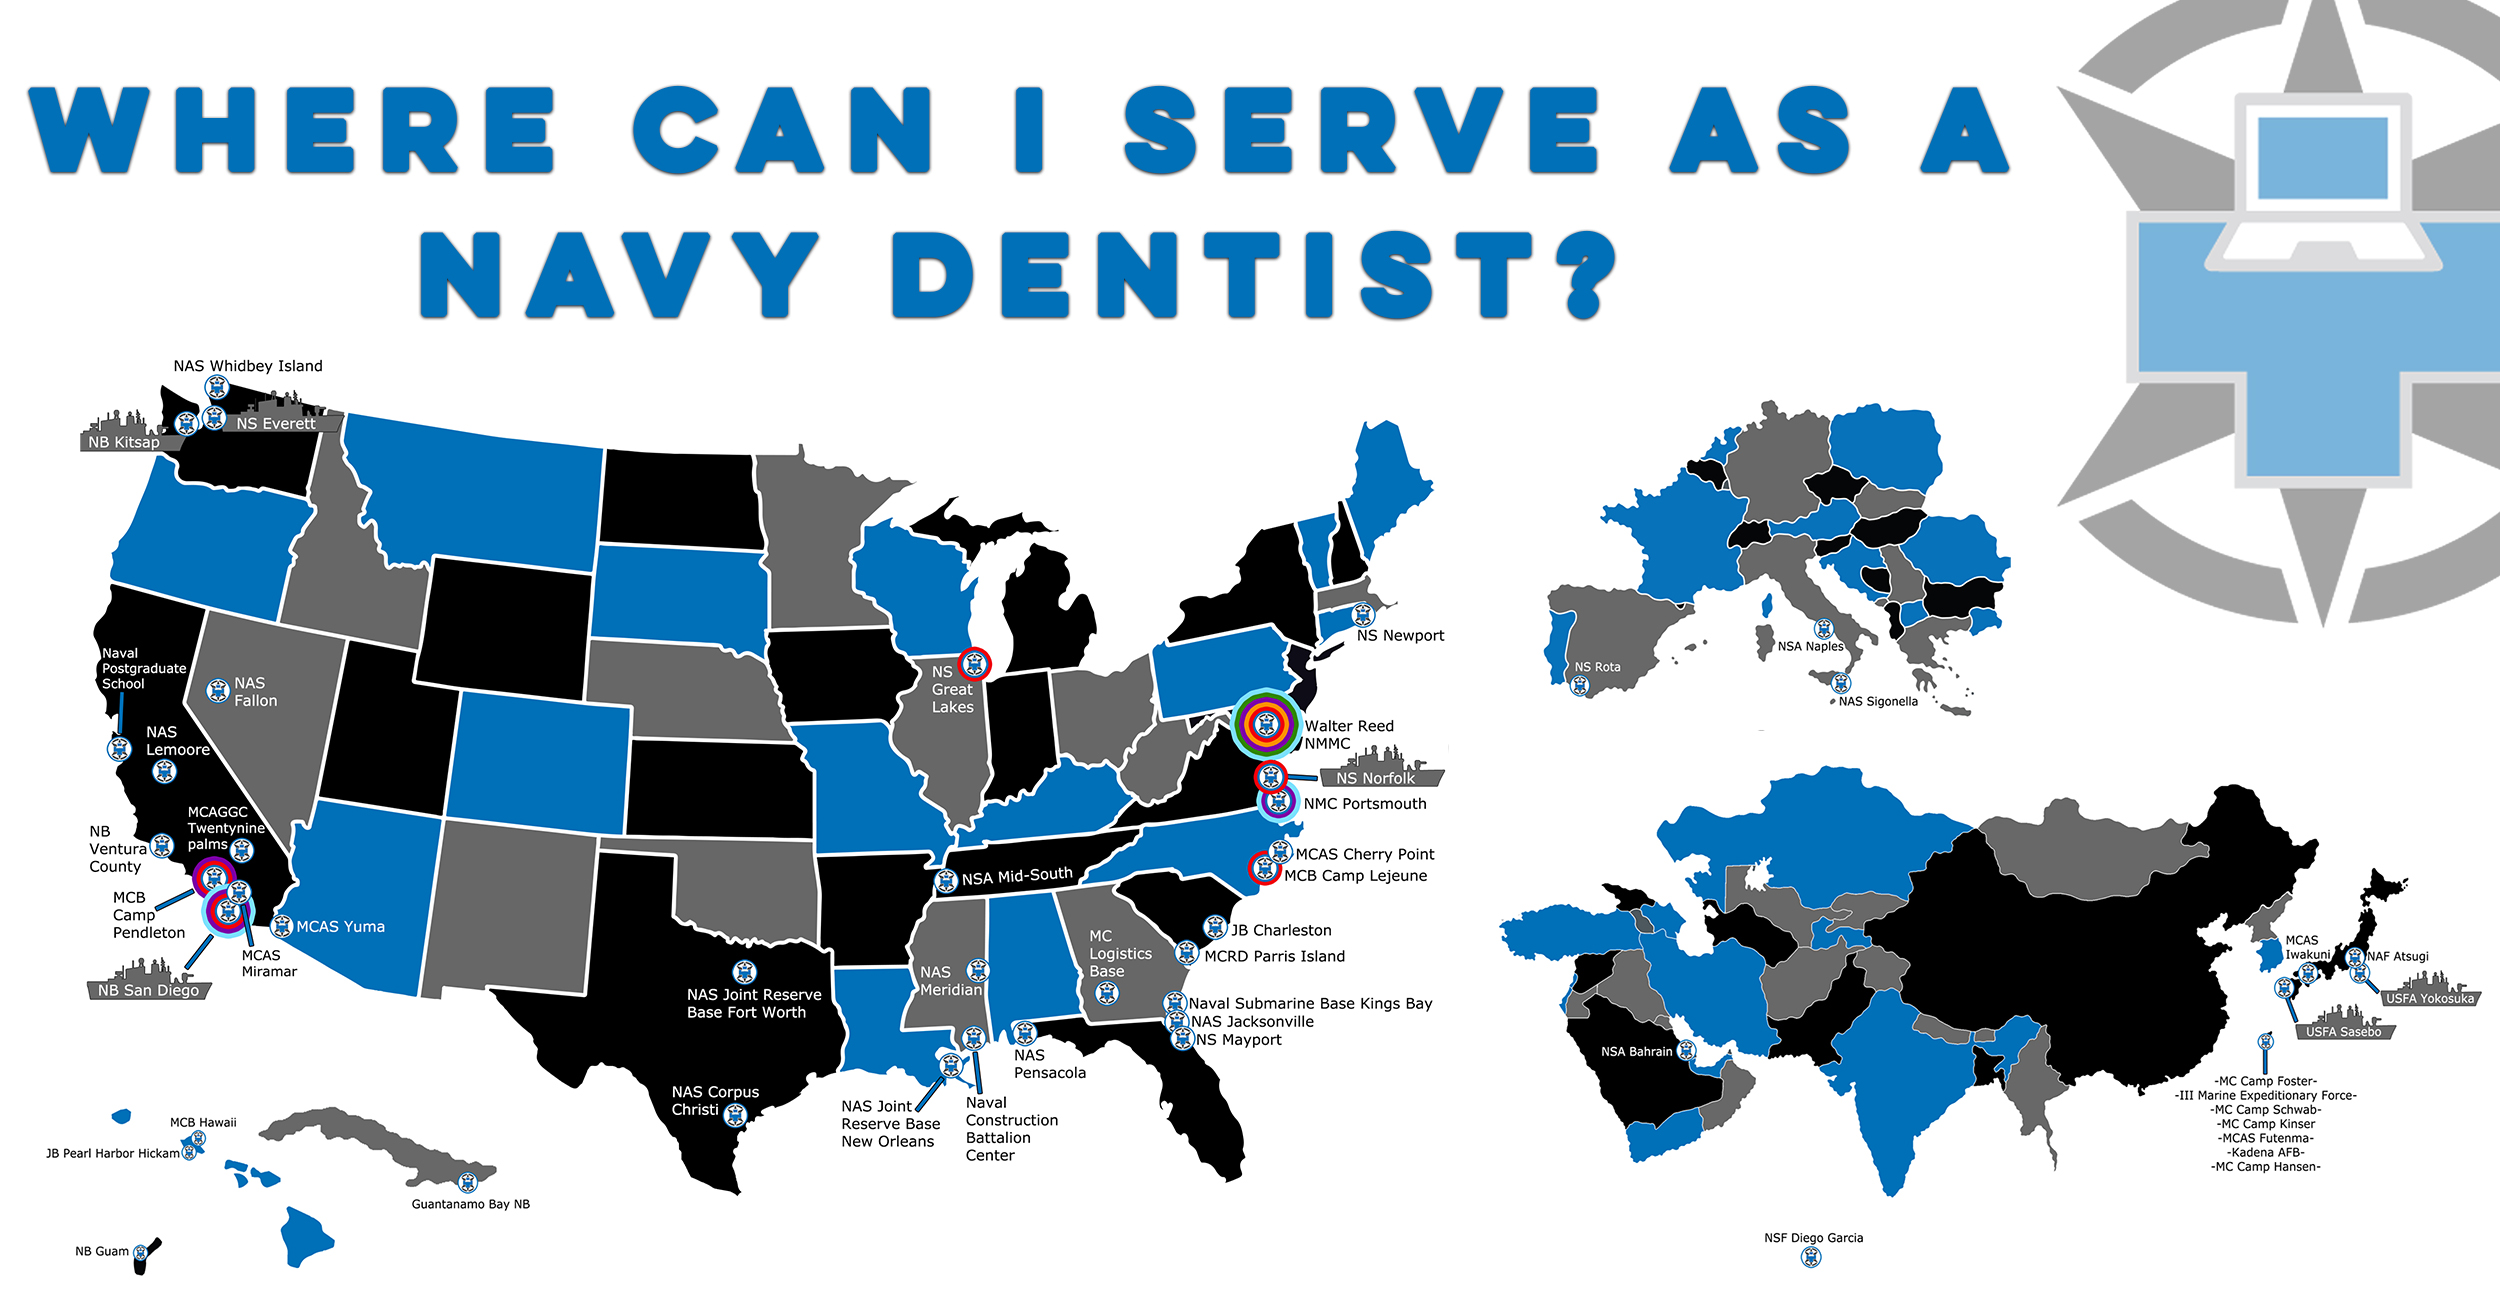 Where Can I Serve As A Navy Dentist?